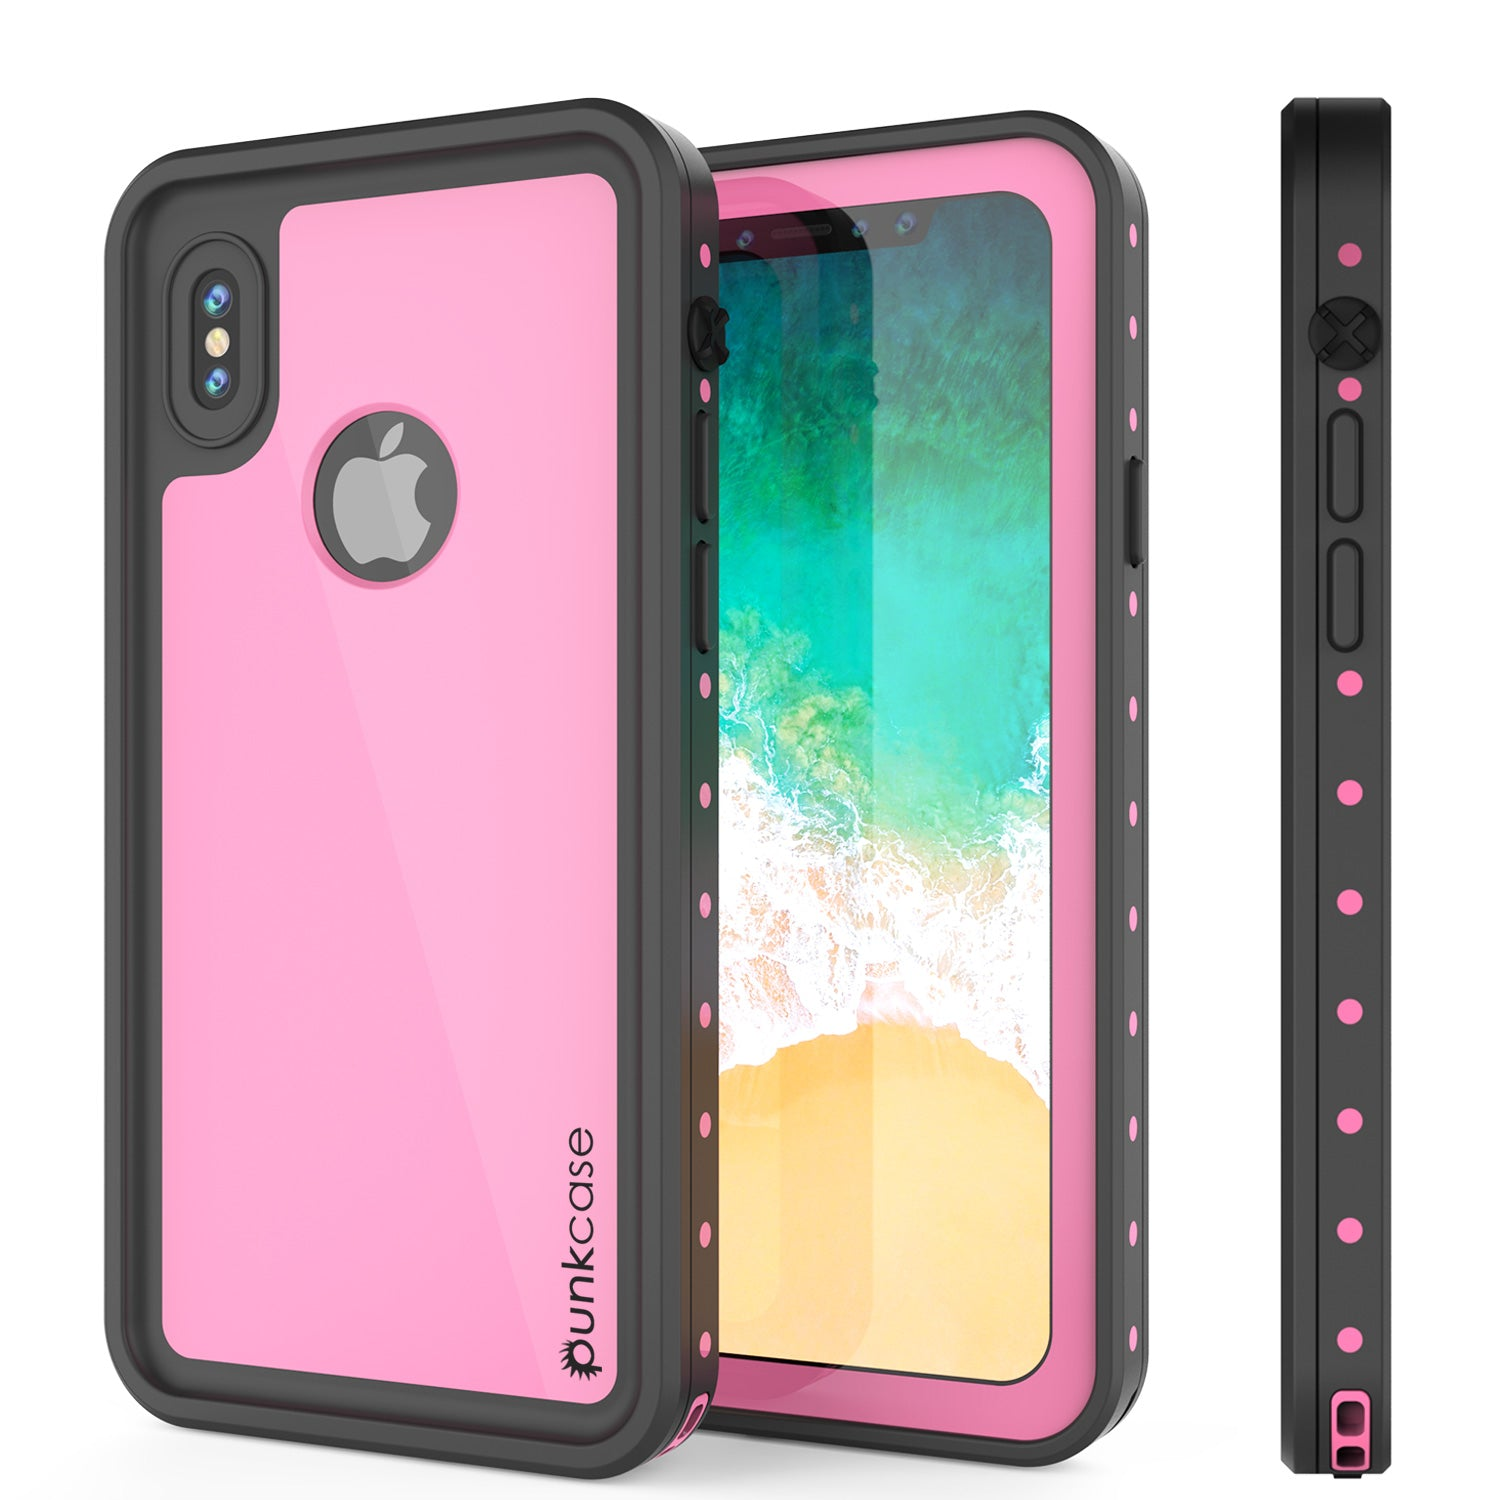 iPhone X Waterproof IP68 Case, Punkcase [Pink] [StudStar Series] [Slim Fit] [Dirtproof]